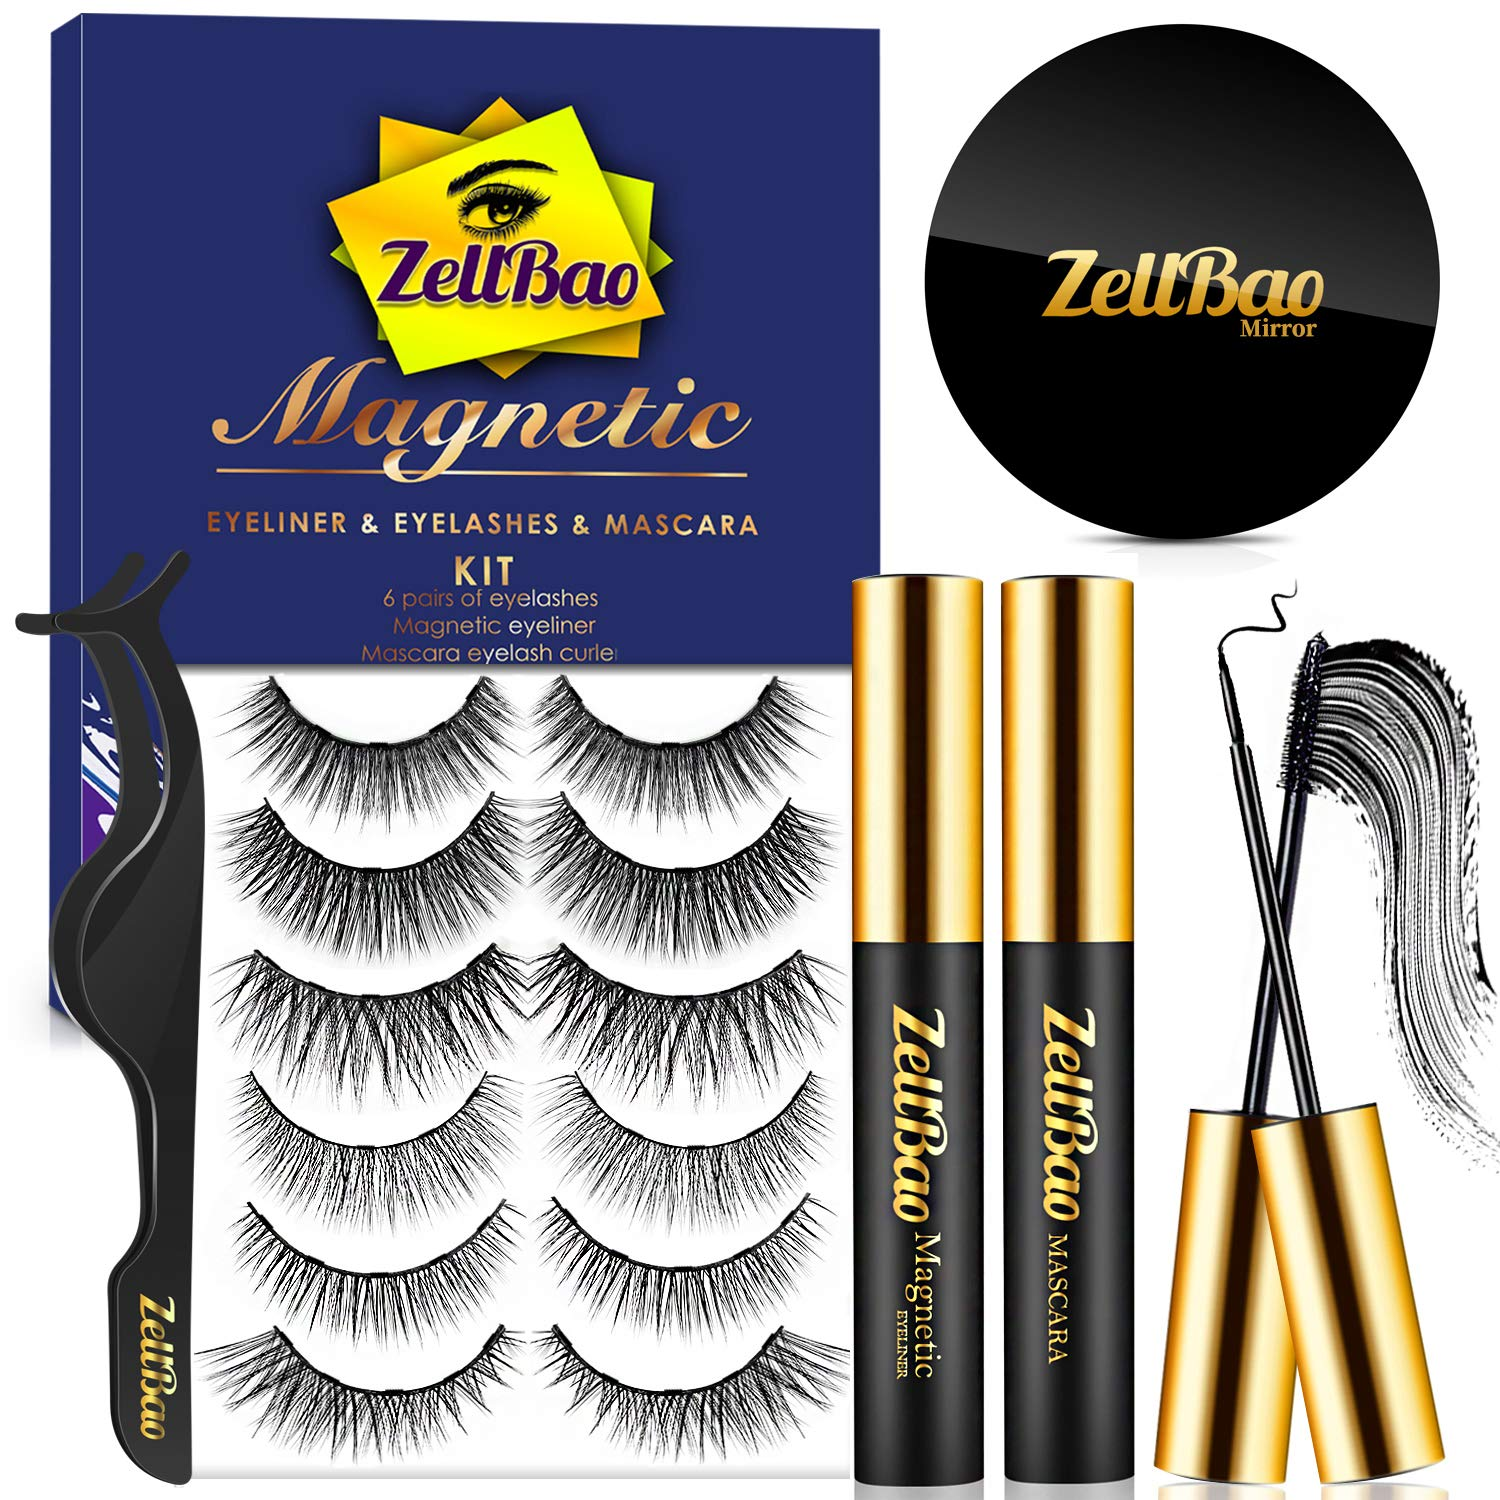 (6 Pairs) Reusable Magnetic Eyelashes, ZellBao Magnetic Eyeliner and Lashes Waterproof Magnetic Eyelashes Kit, Silk False Lashes with Mirror and Tweezers, Waterproof Magnetic Eyeliner Kit and Mascara